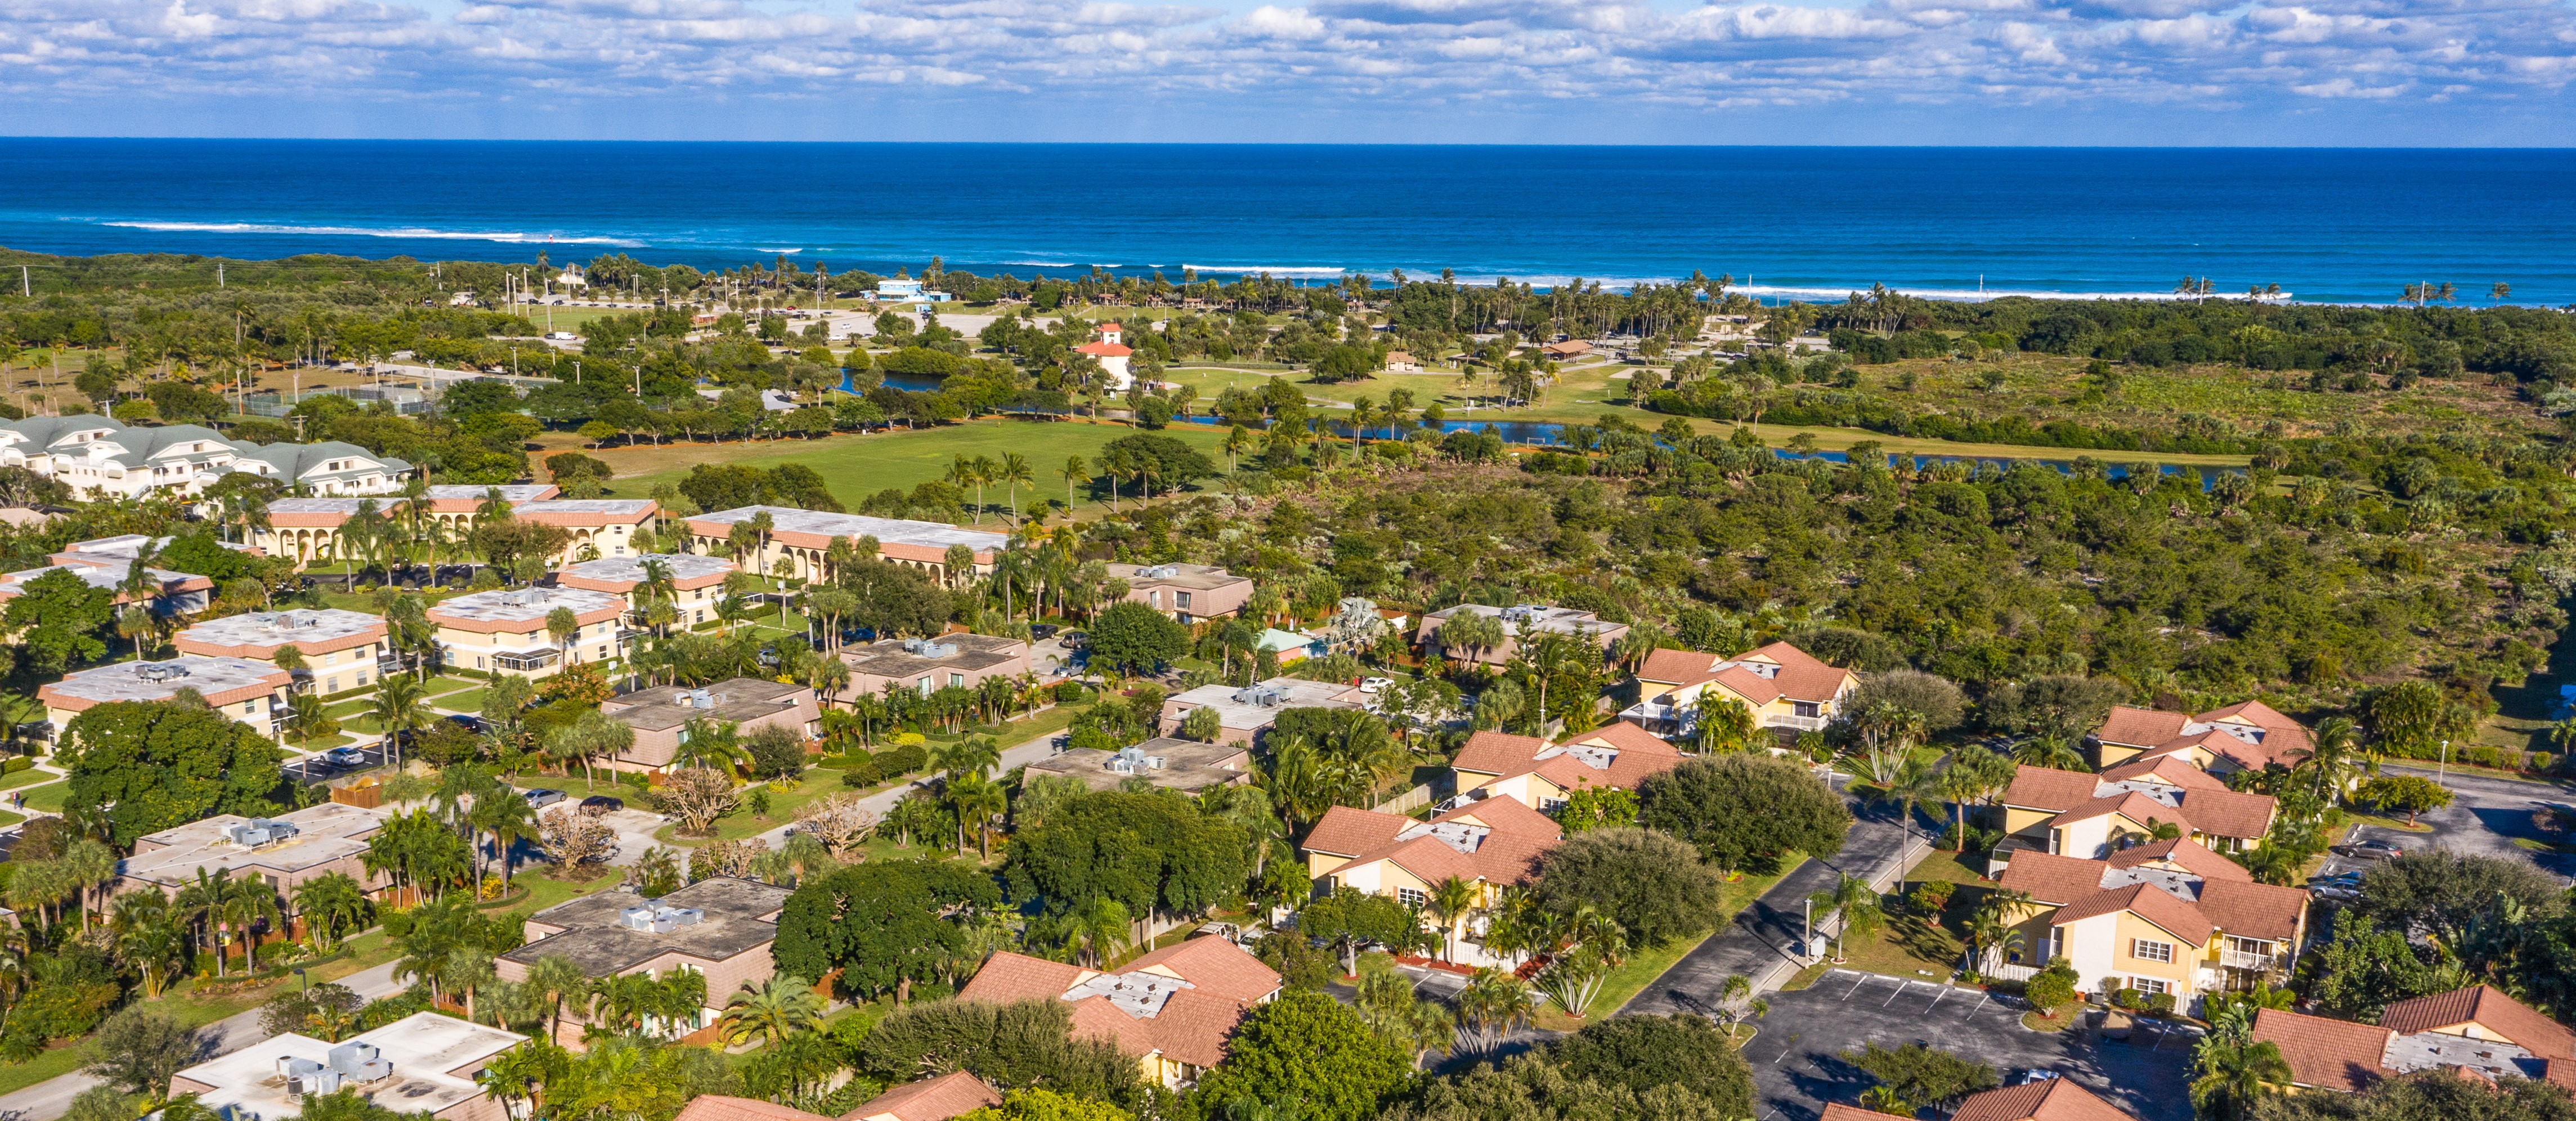 Where Is Jupiter Florida >> Seabrook Place Jupiter Hoa Seabrook Place Jupiter Fl Homes